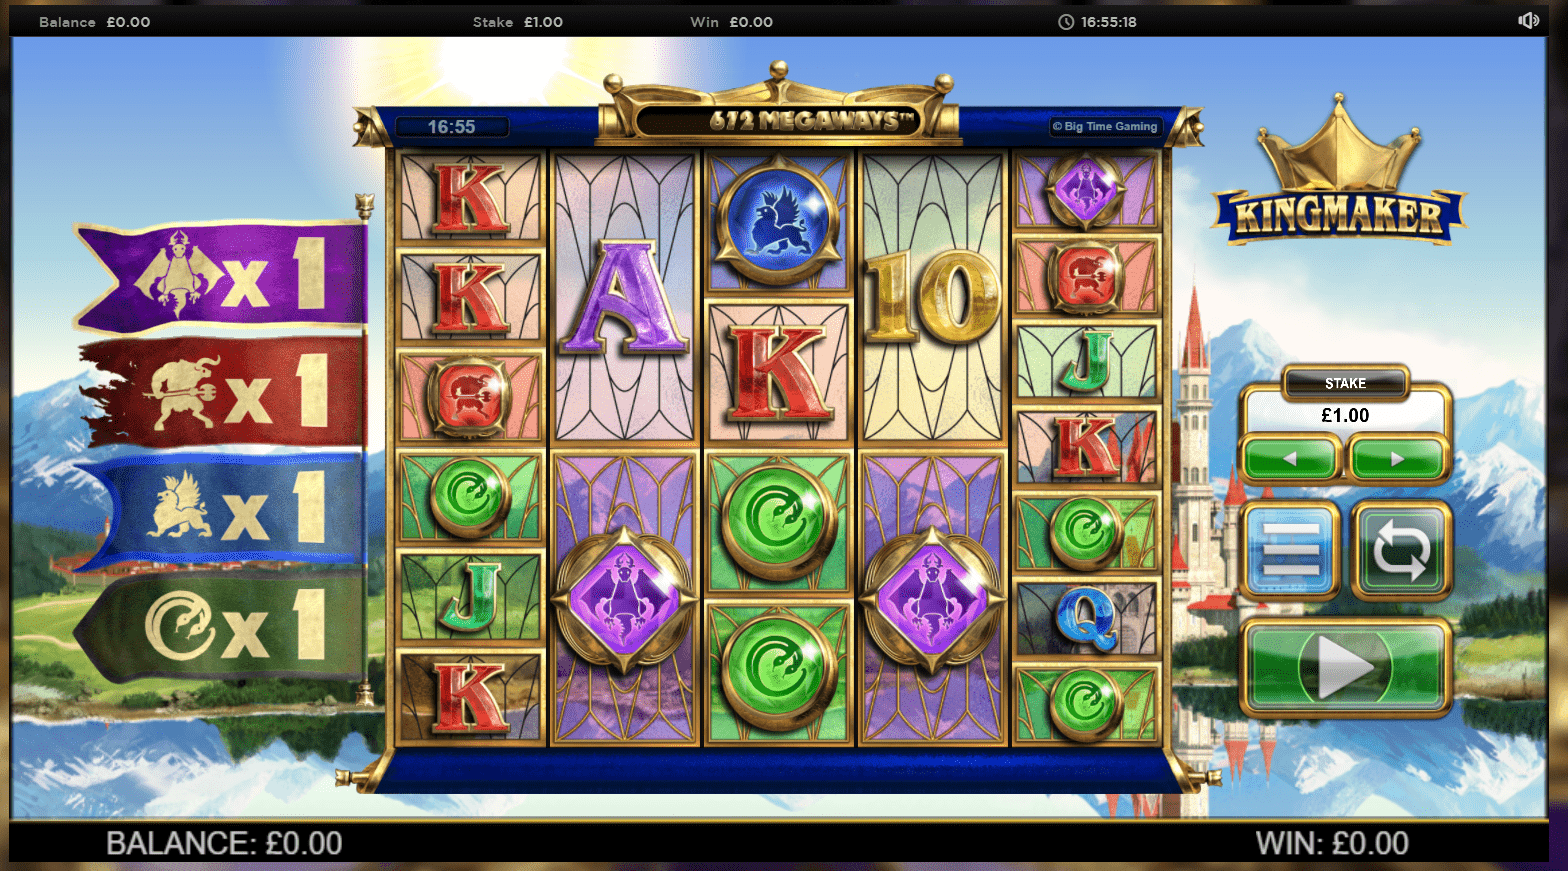 Kingmaker - Online Casino UK